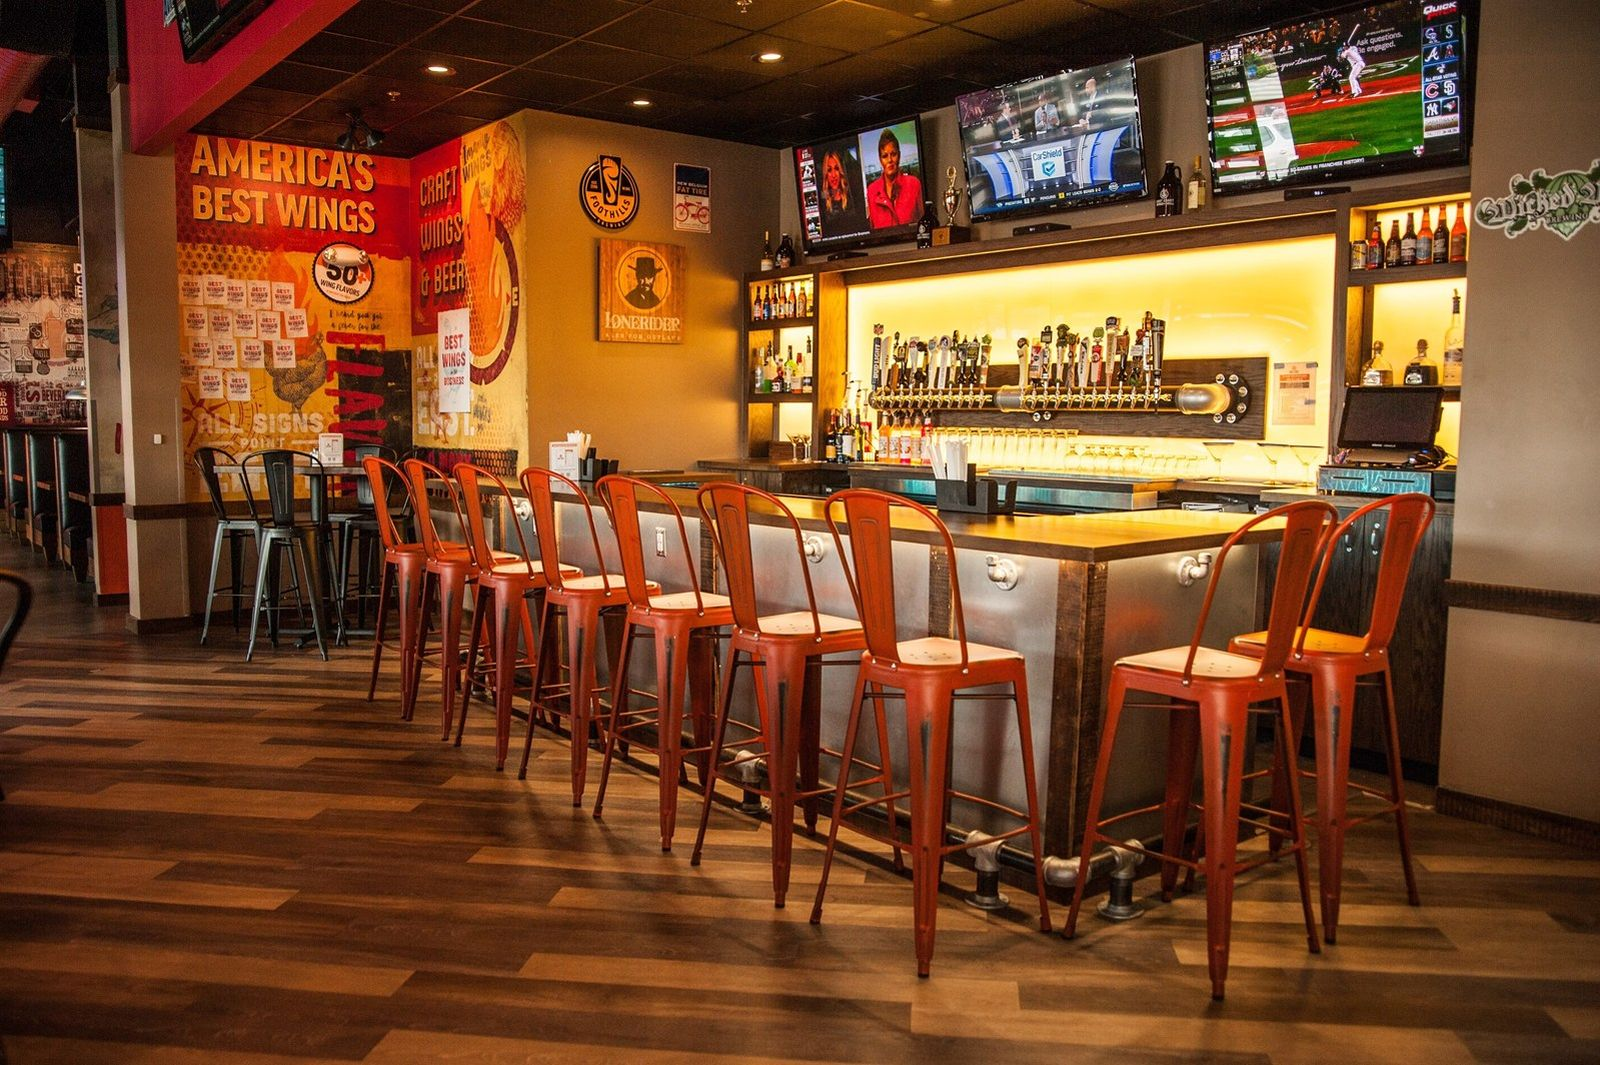 East Coast Wings + Grill Unveils Comprehensive Brand Reinvention, Debuts East Coast Wings + Grill 2.0